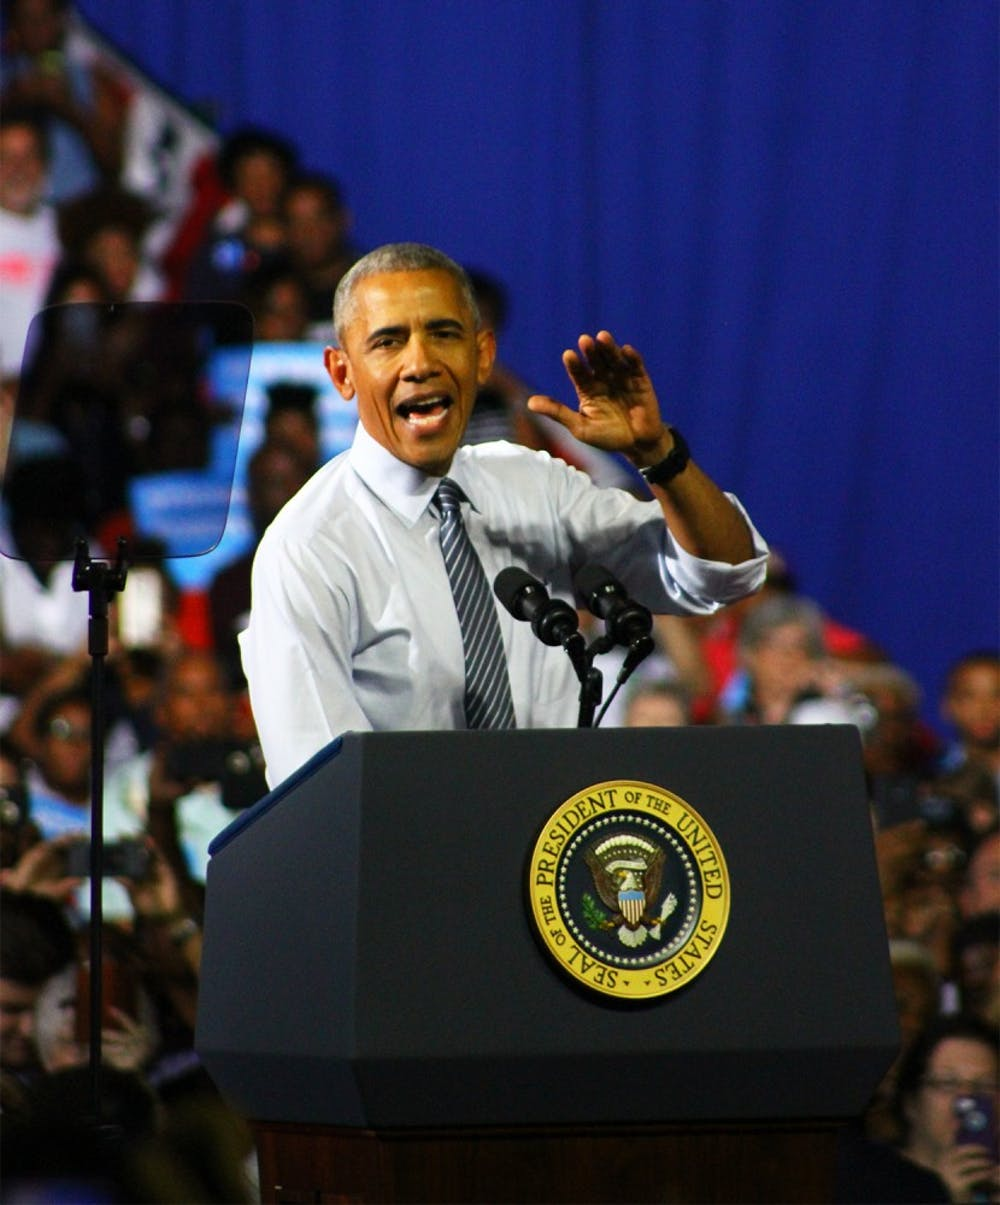 A presidential playlist for Obama's visit